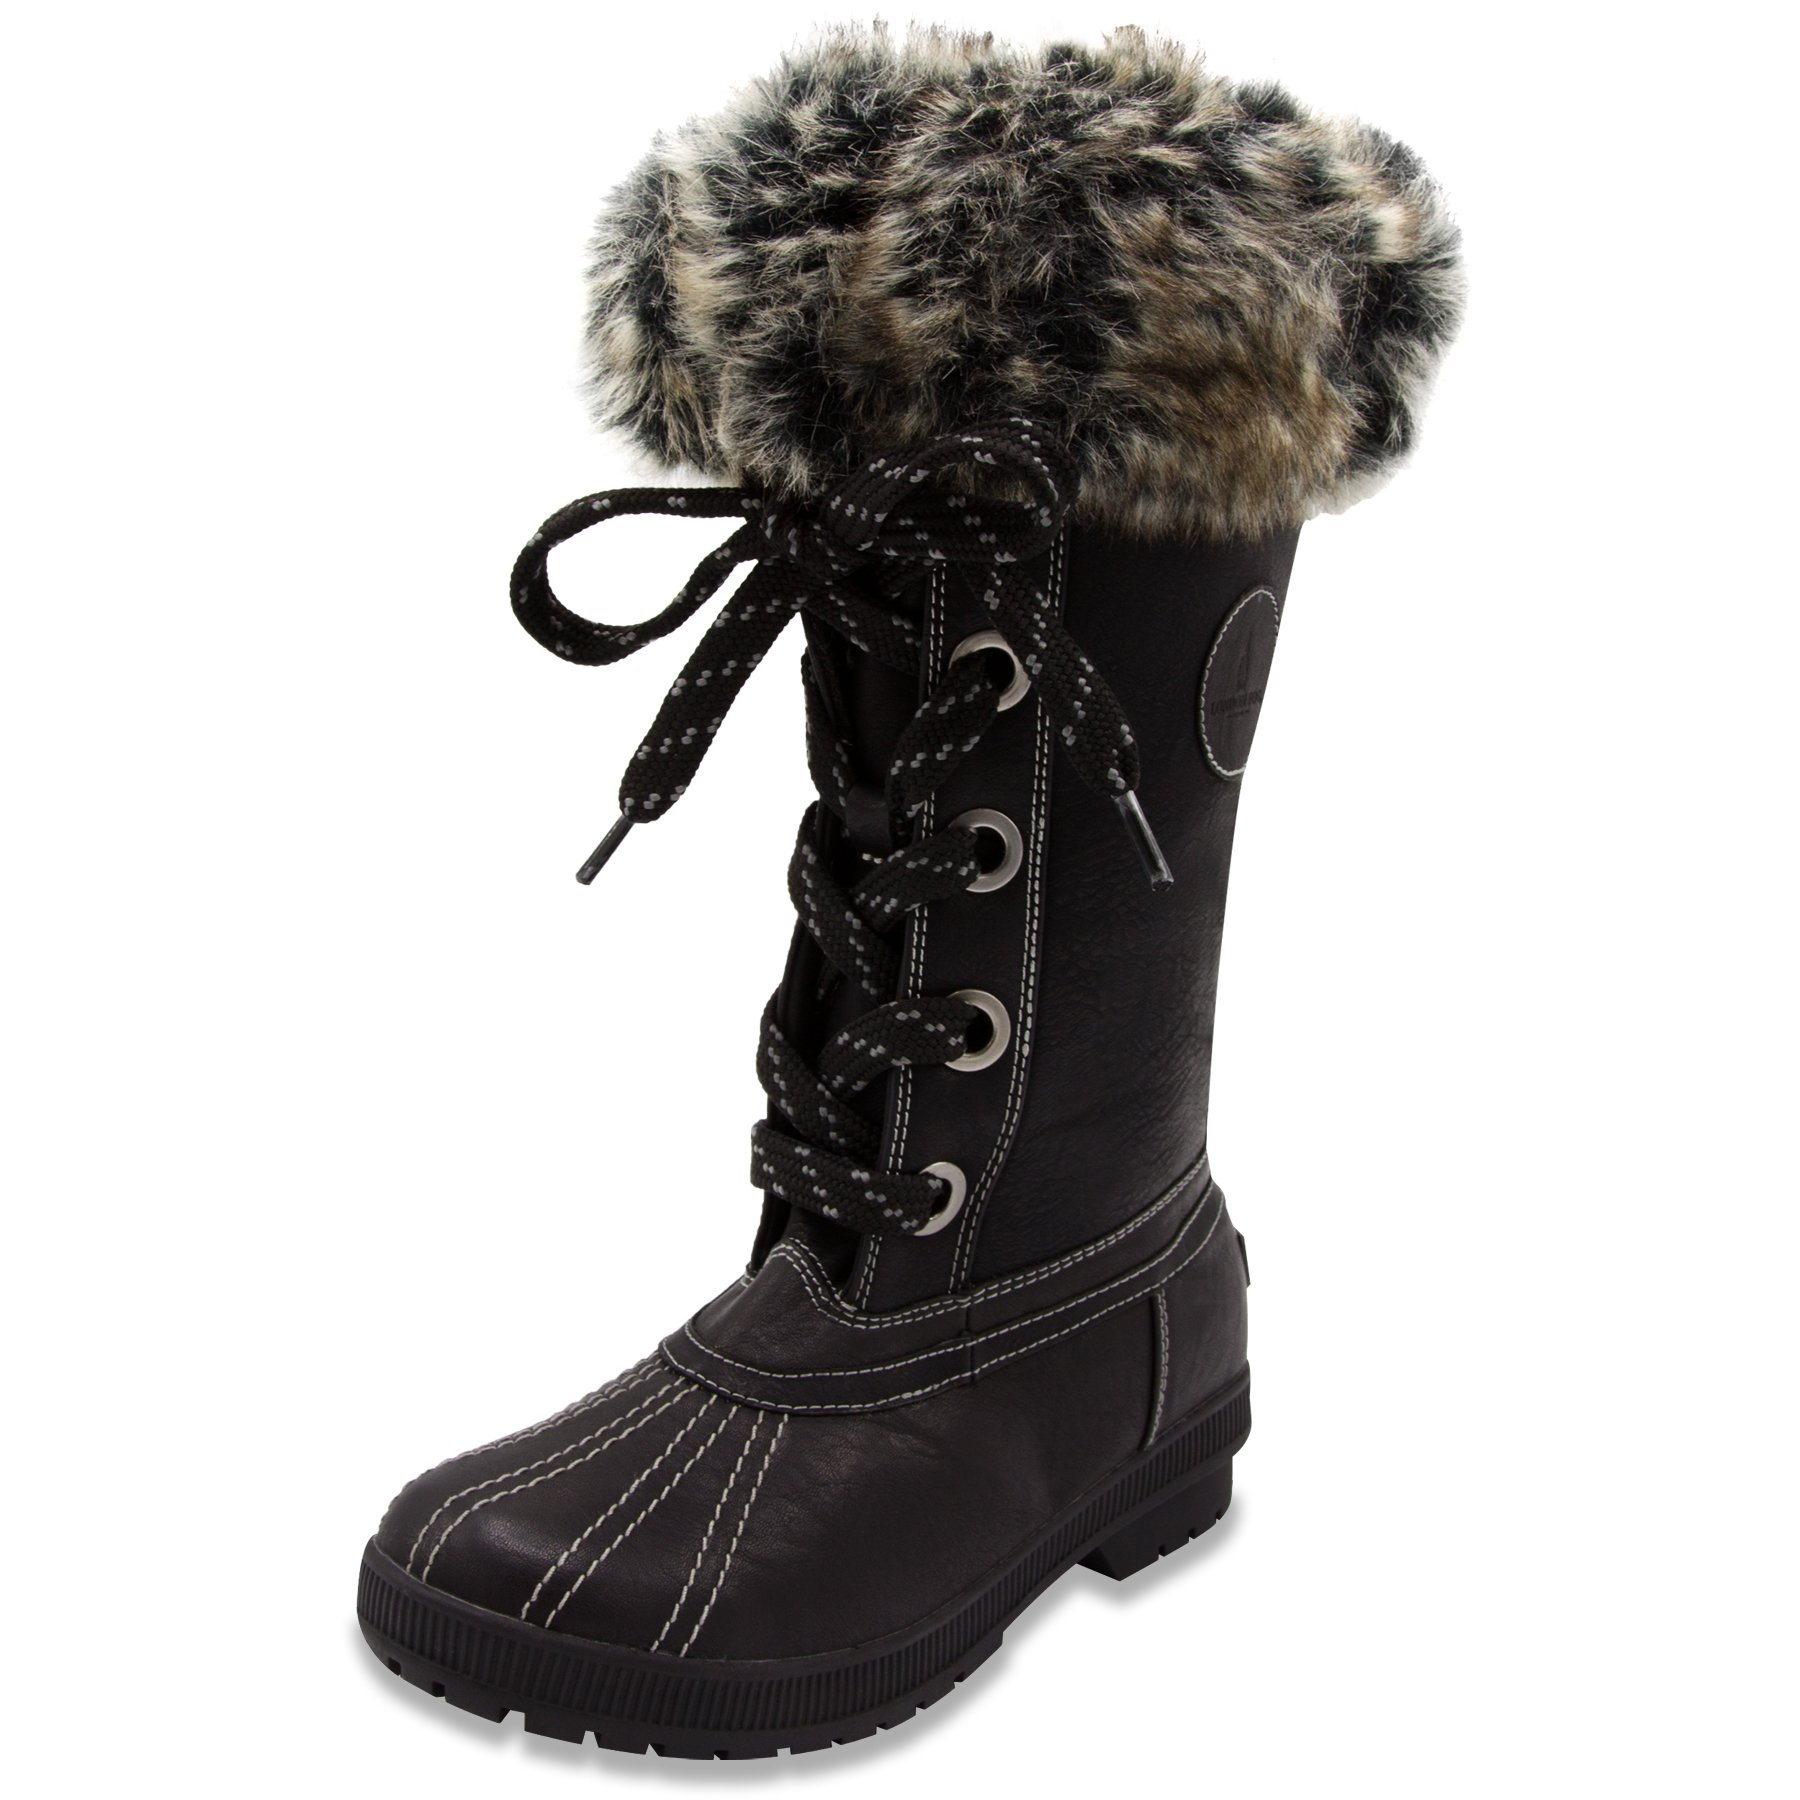 London Fog Womens Melton Cold Weather Waterproof Snow Boot Black 9 M US